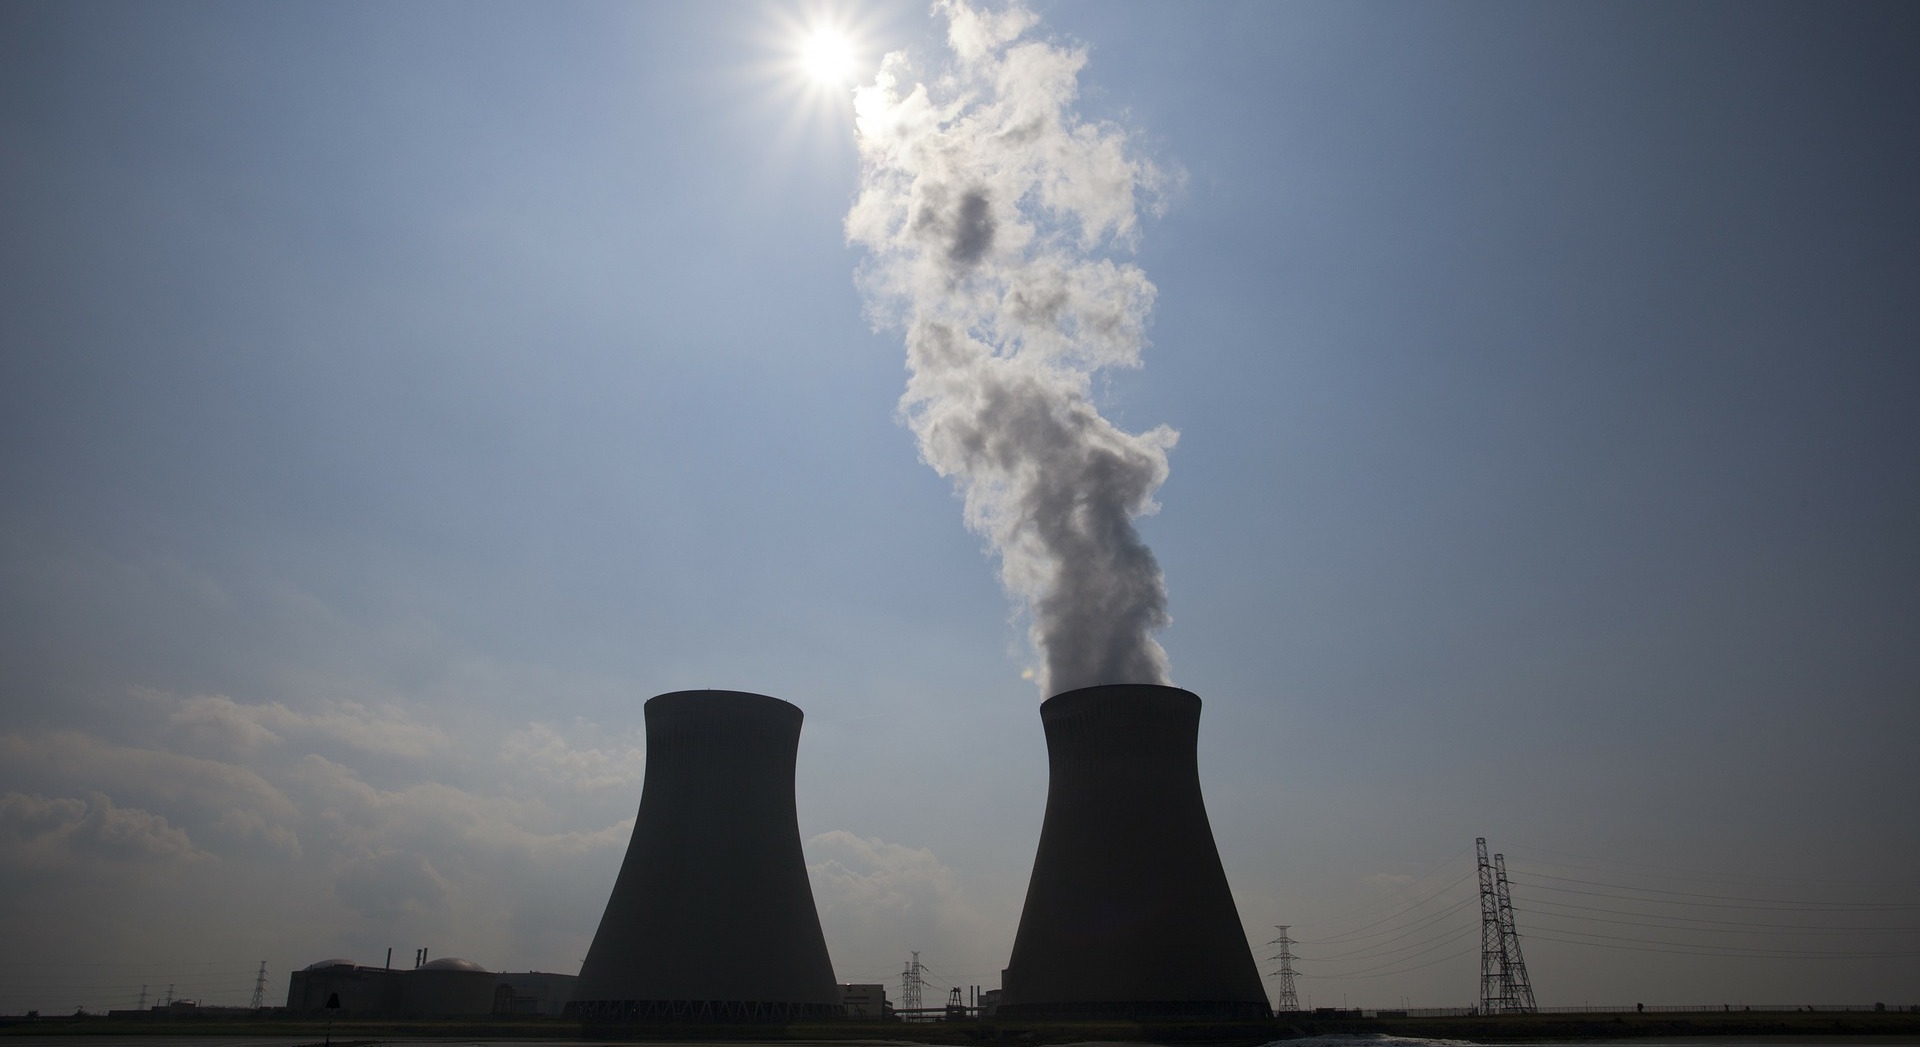 nuclear plant with steam rising from a tower, and the sun shining